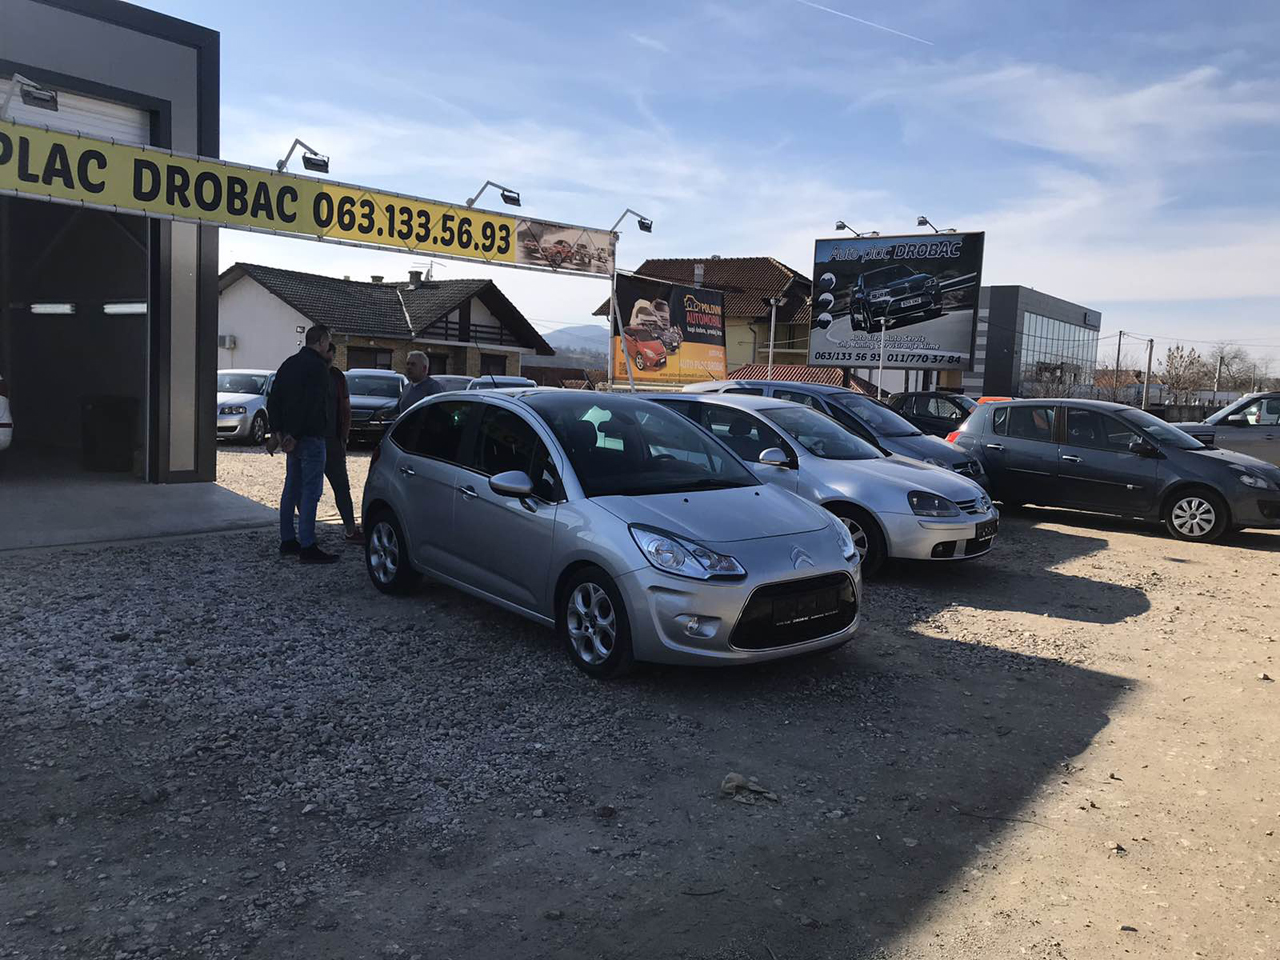 CAR LOT AND CAR SERVICE DROBAC Tire repair Mladenovac - Photo 3